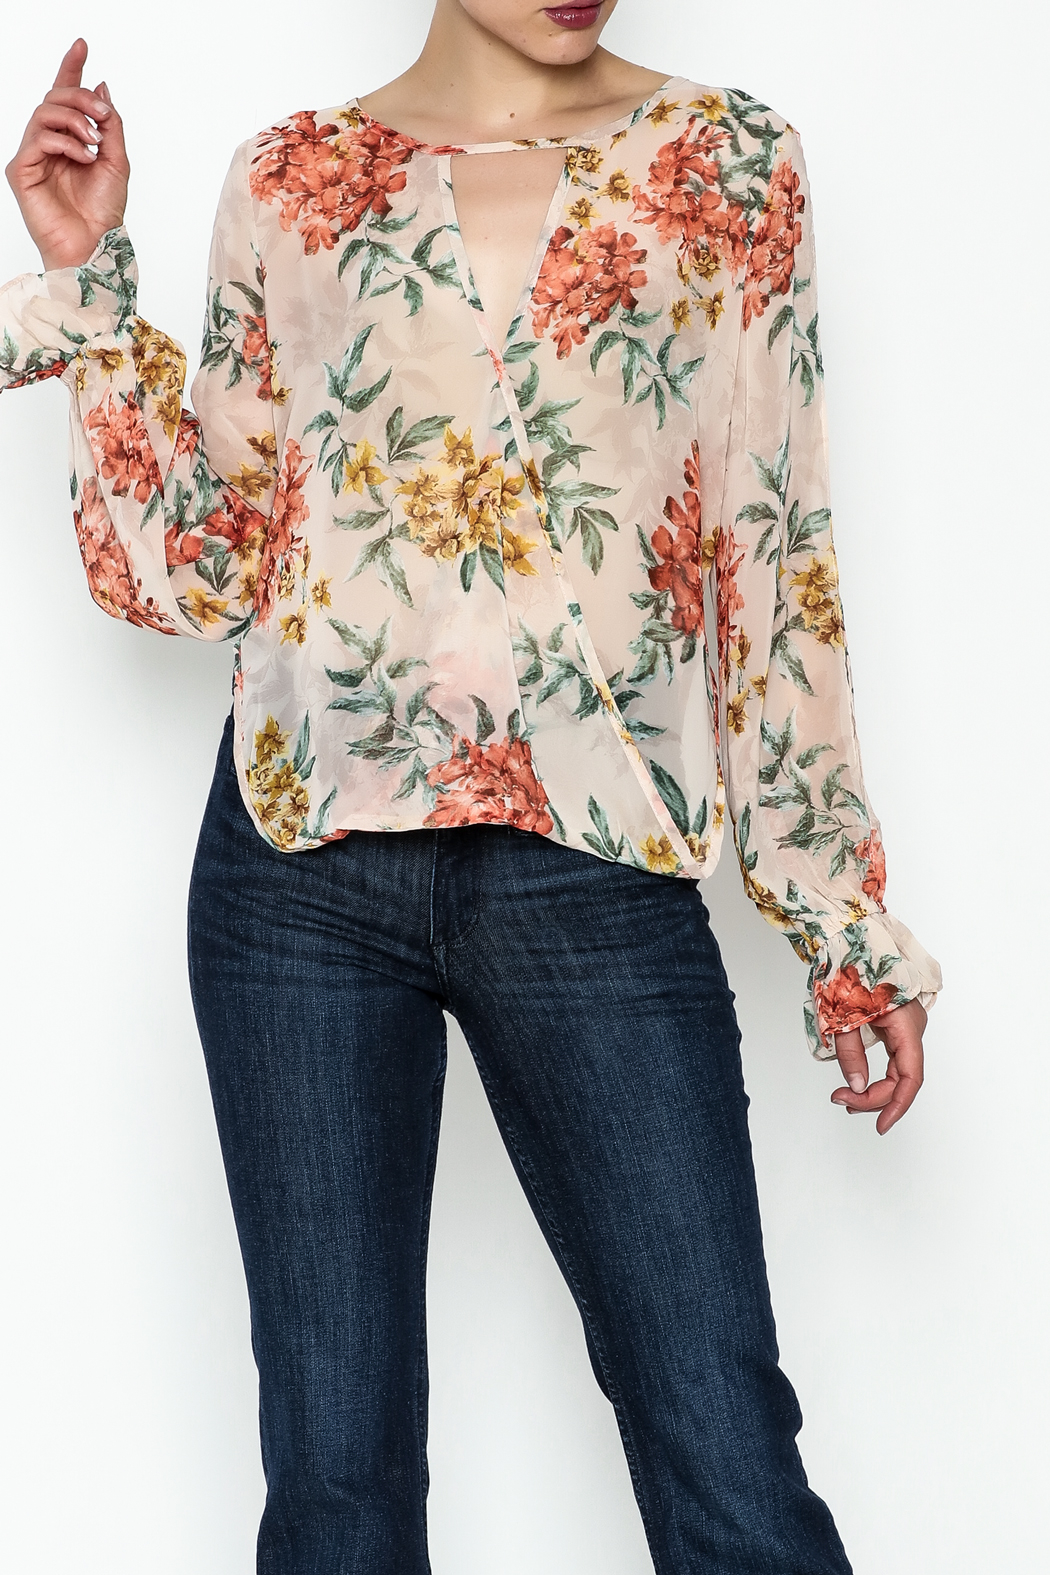 Ark & Co. Sheer Floral Blouse - Main Image